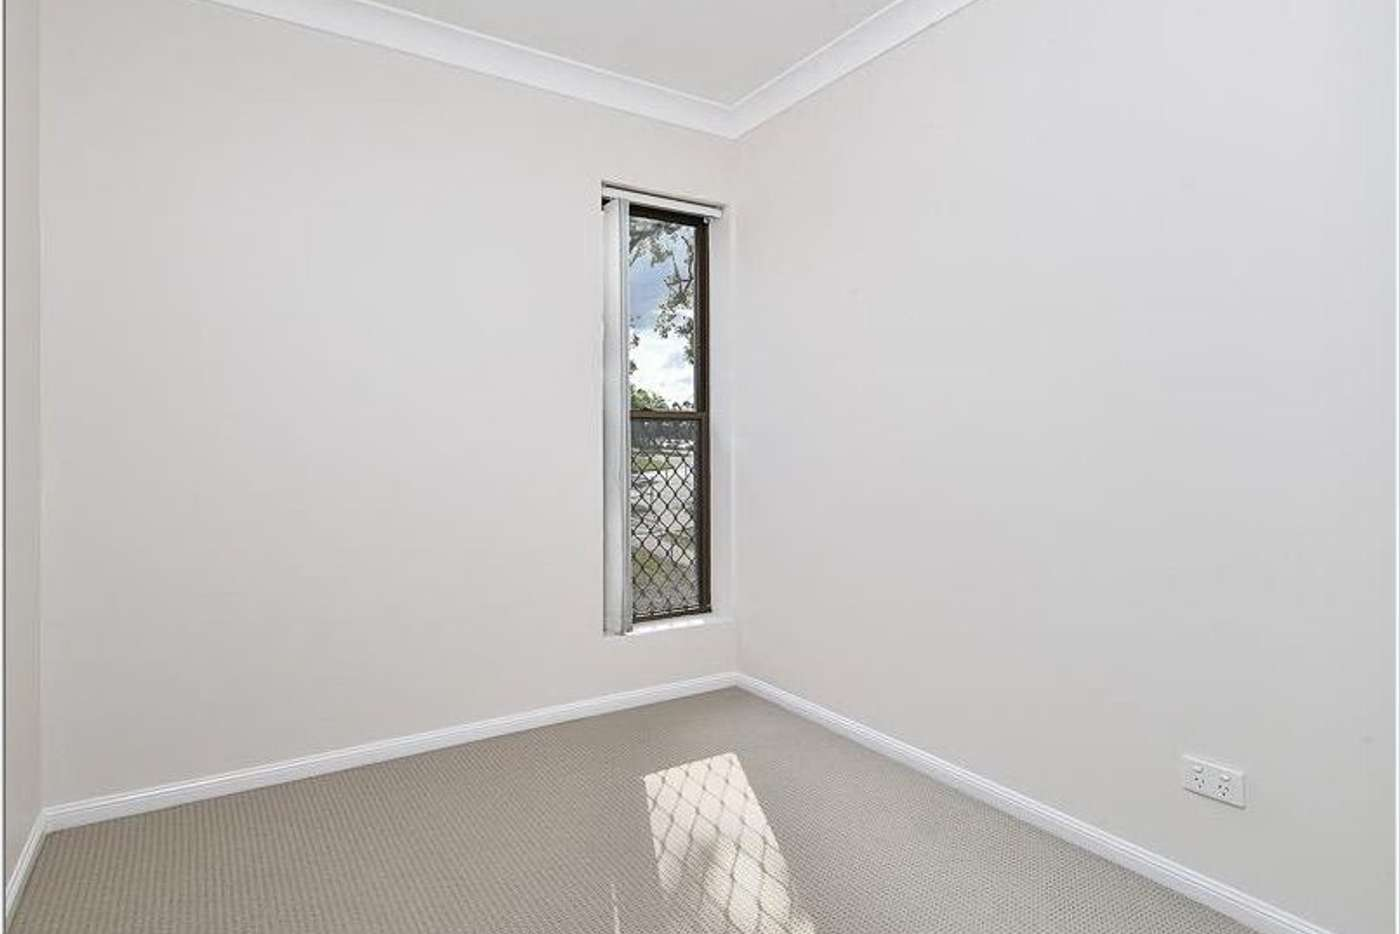 Sixth view of Homely unit listing, 4/70 Hilltop Avenue, Chermside QLD 4032